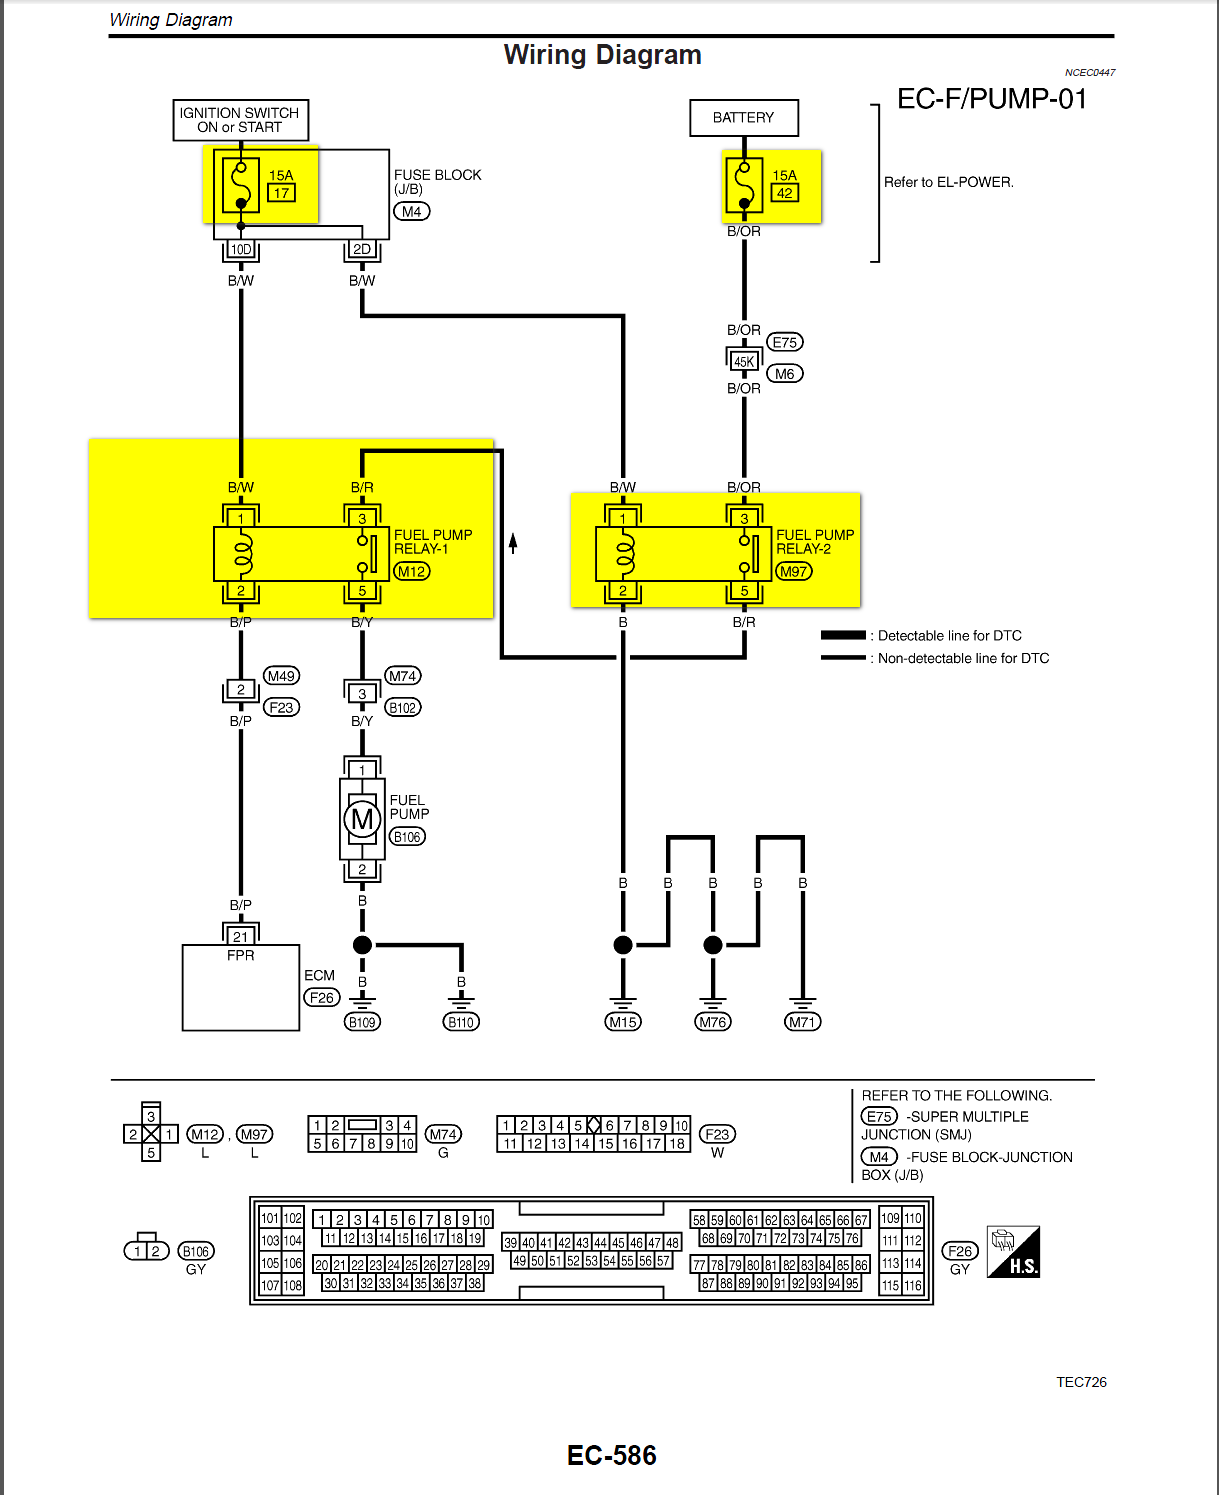 Tzh152fmh Wiring Diagram Diagrams. Tzh152fmh Wiring Diagram Library 3 Phase Motor Diagrams Infiniti Fuel Pump Schematic. Wiring. Tzh152fmh Wiring Diagram Eazy At Scoala.co